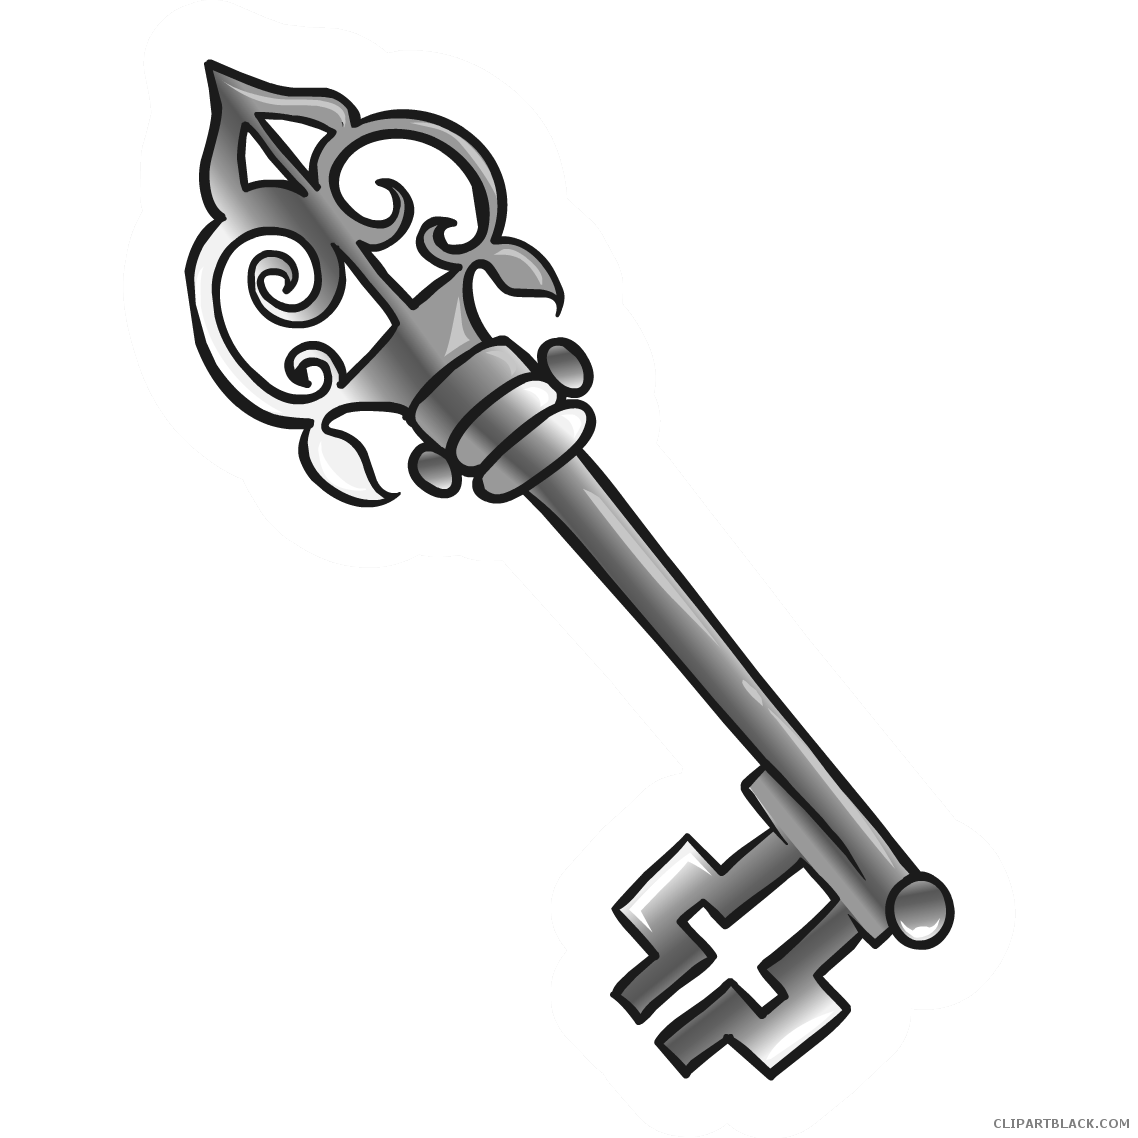 Keys clipart pretty. Old key clipartblack com